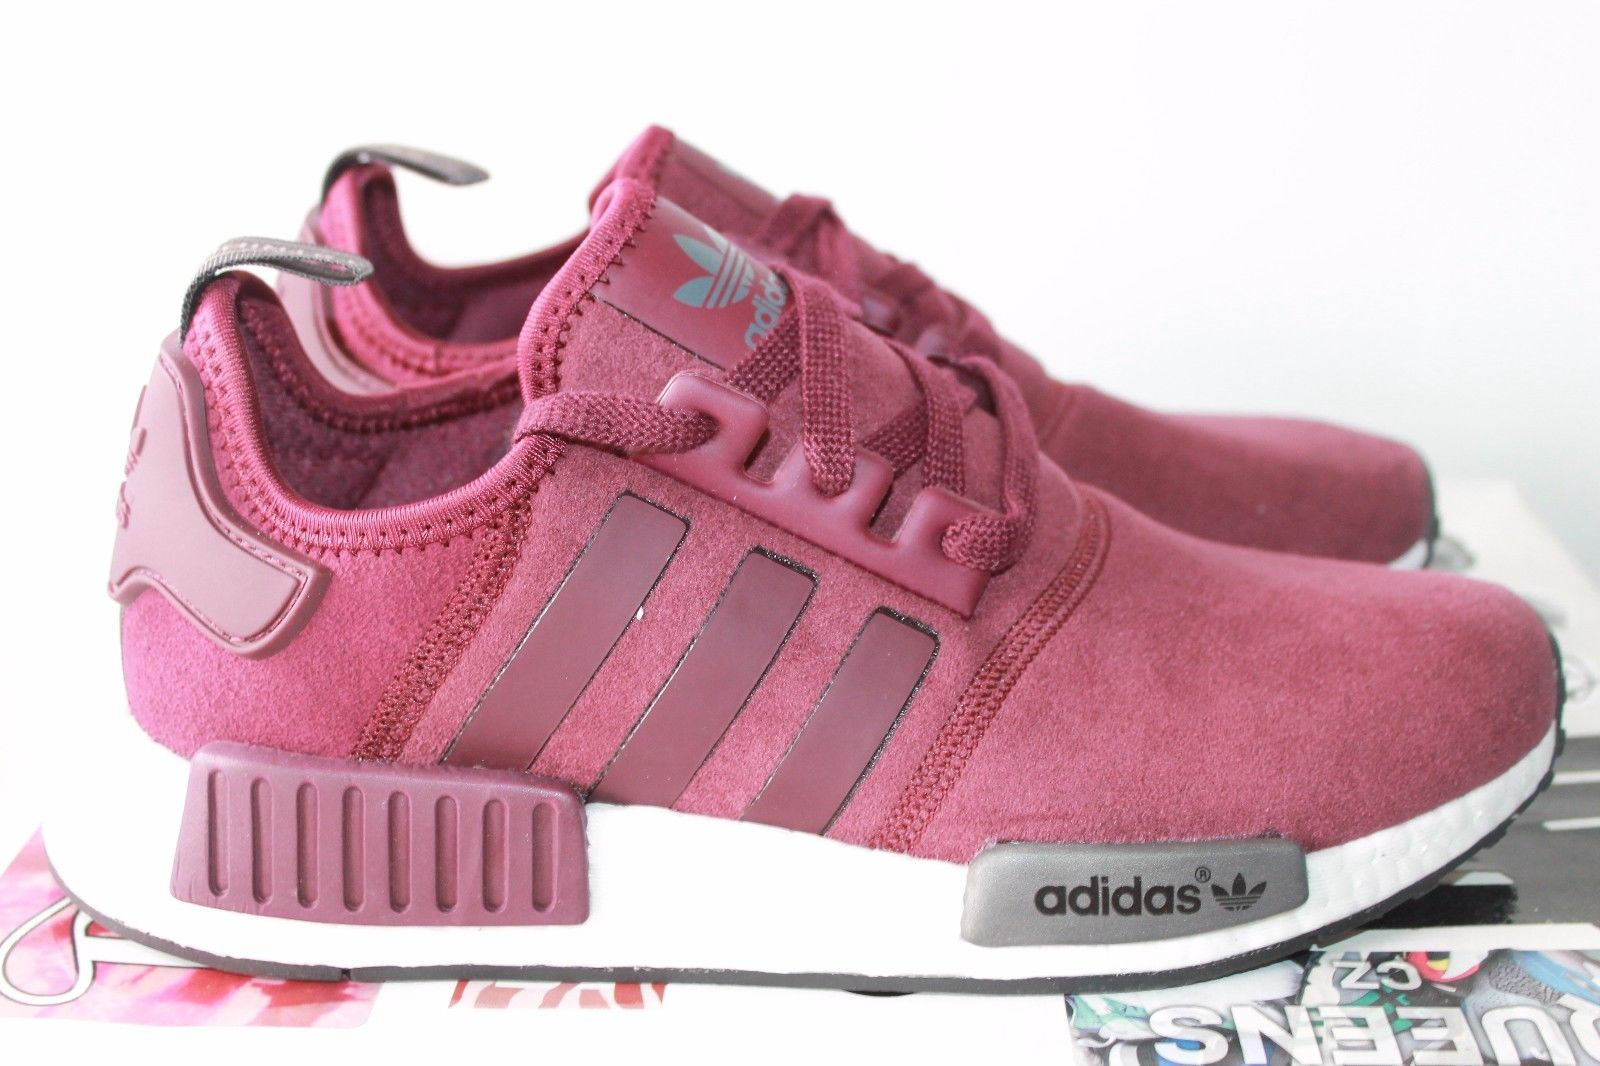 new adidas trainers for womens